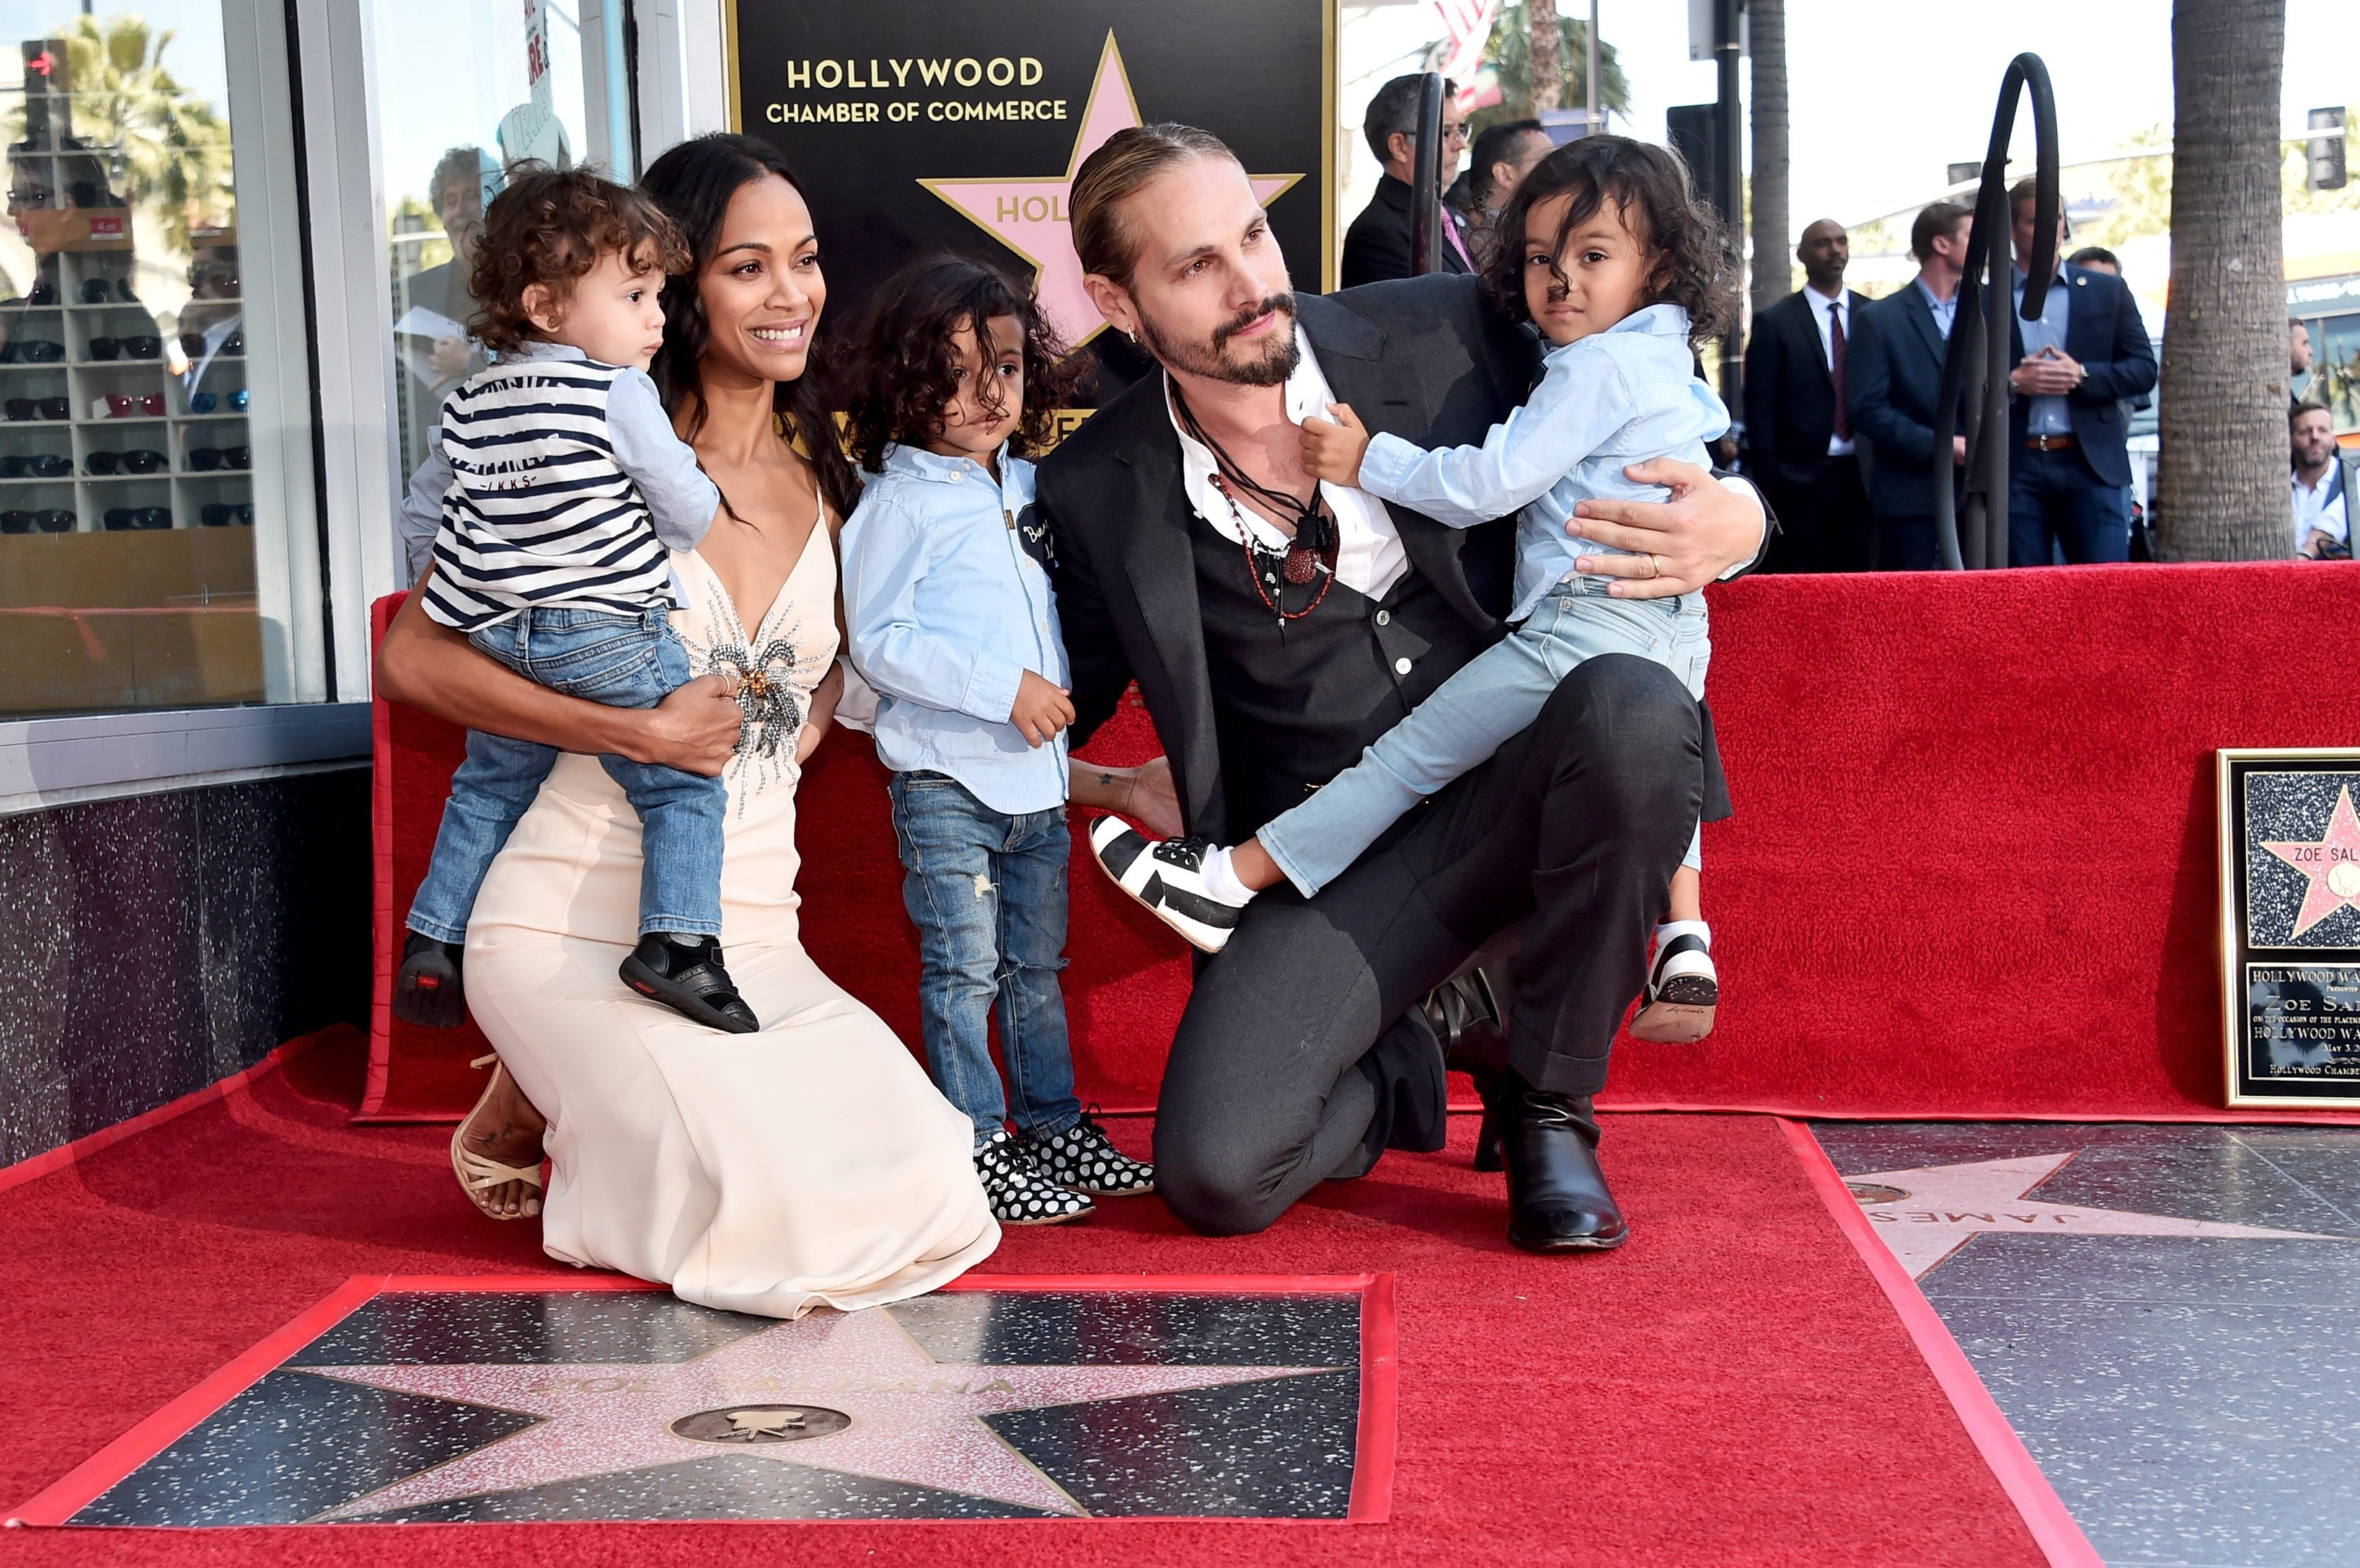 Zoe Saldana, Marco Perego, and children at the Zoe Saldana Walk Of Fame Star Ceremony on May 3, 2018 in Hollywood, California. | Photo: GettyImages